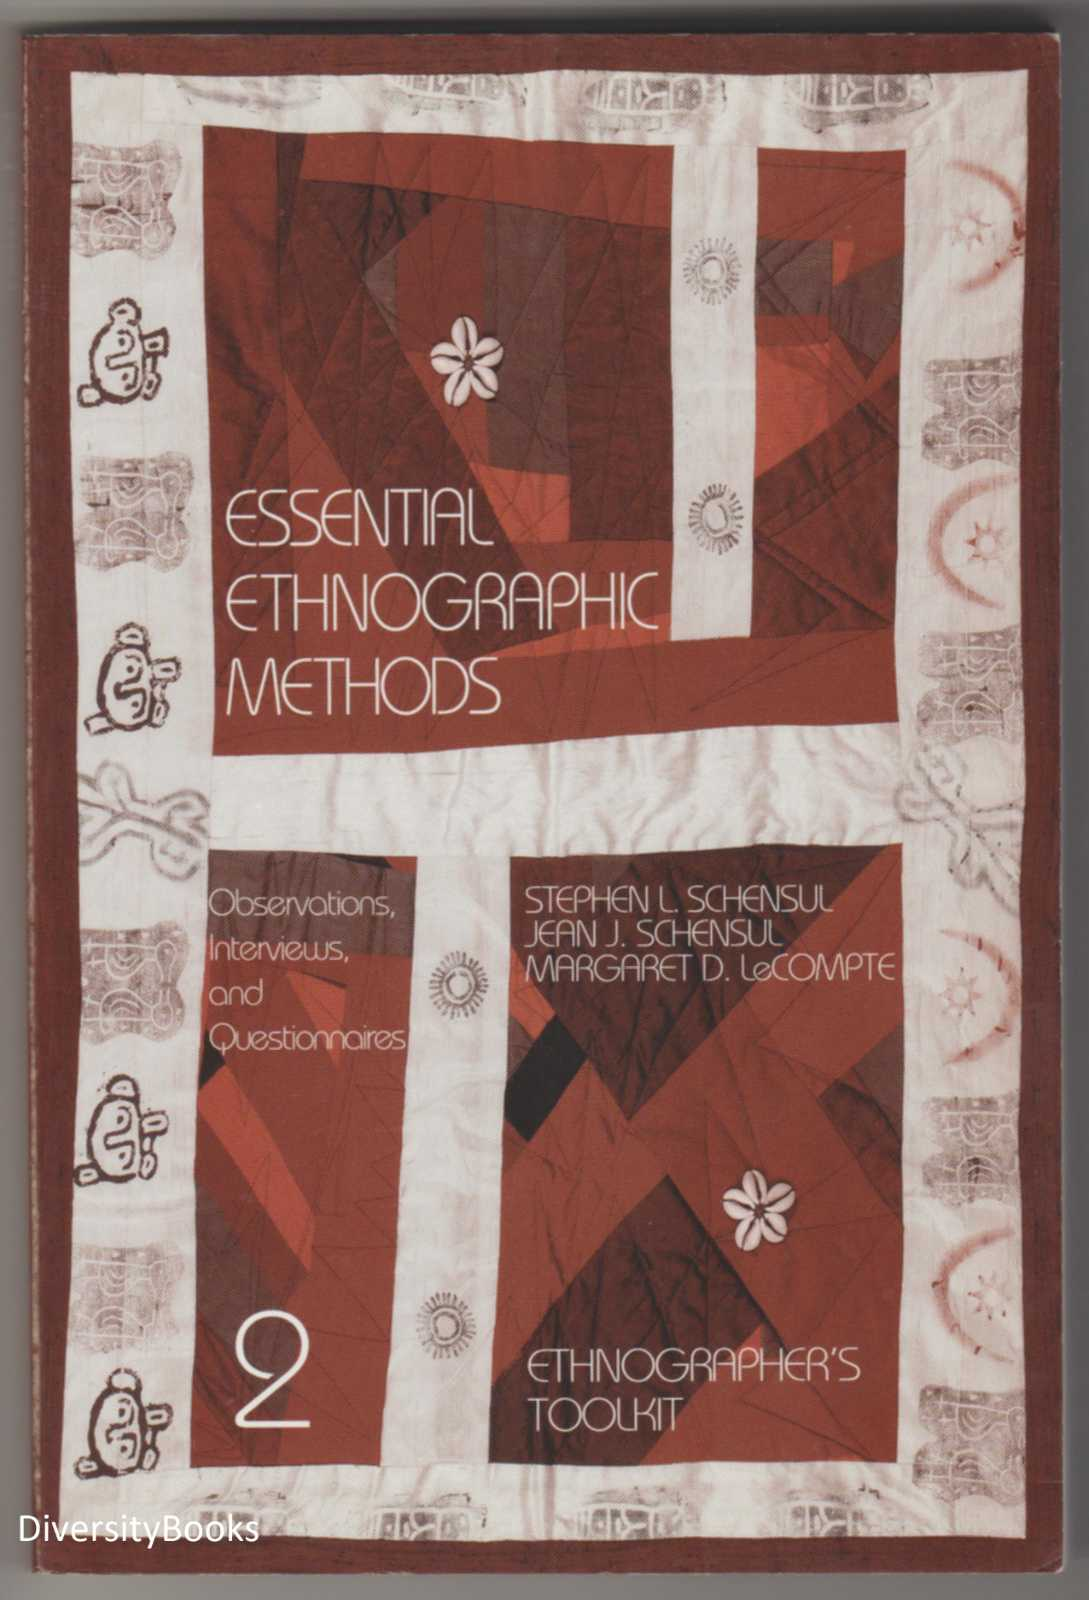 Image for ESSENTIAL ETHNOGRAPHIC METHODS: Observations, Interviews, and Questionnaires  (Ethnographer's Toolkit, Vol. 2)